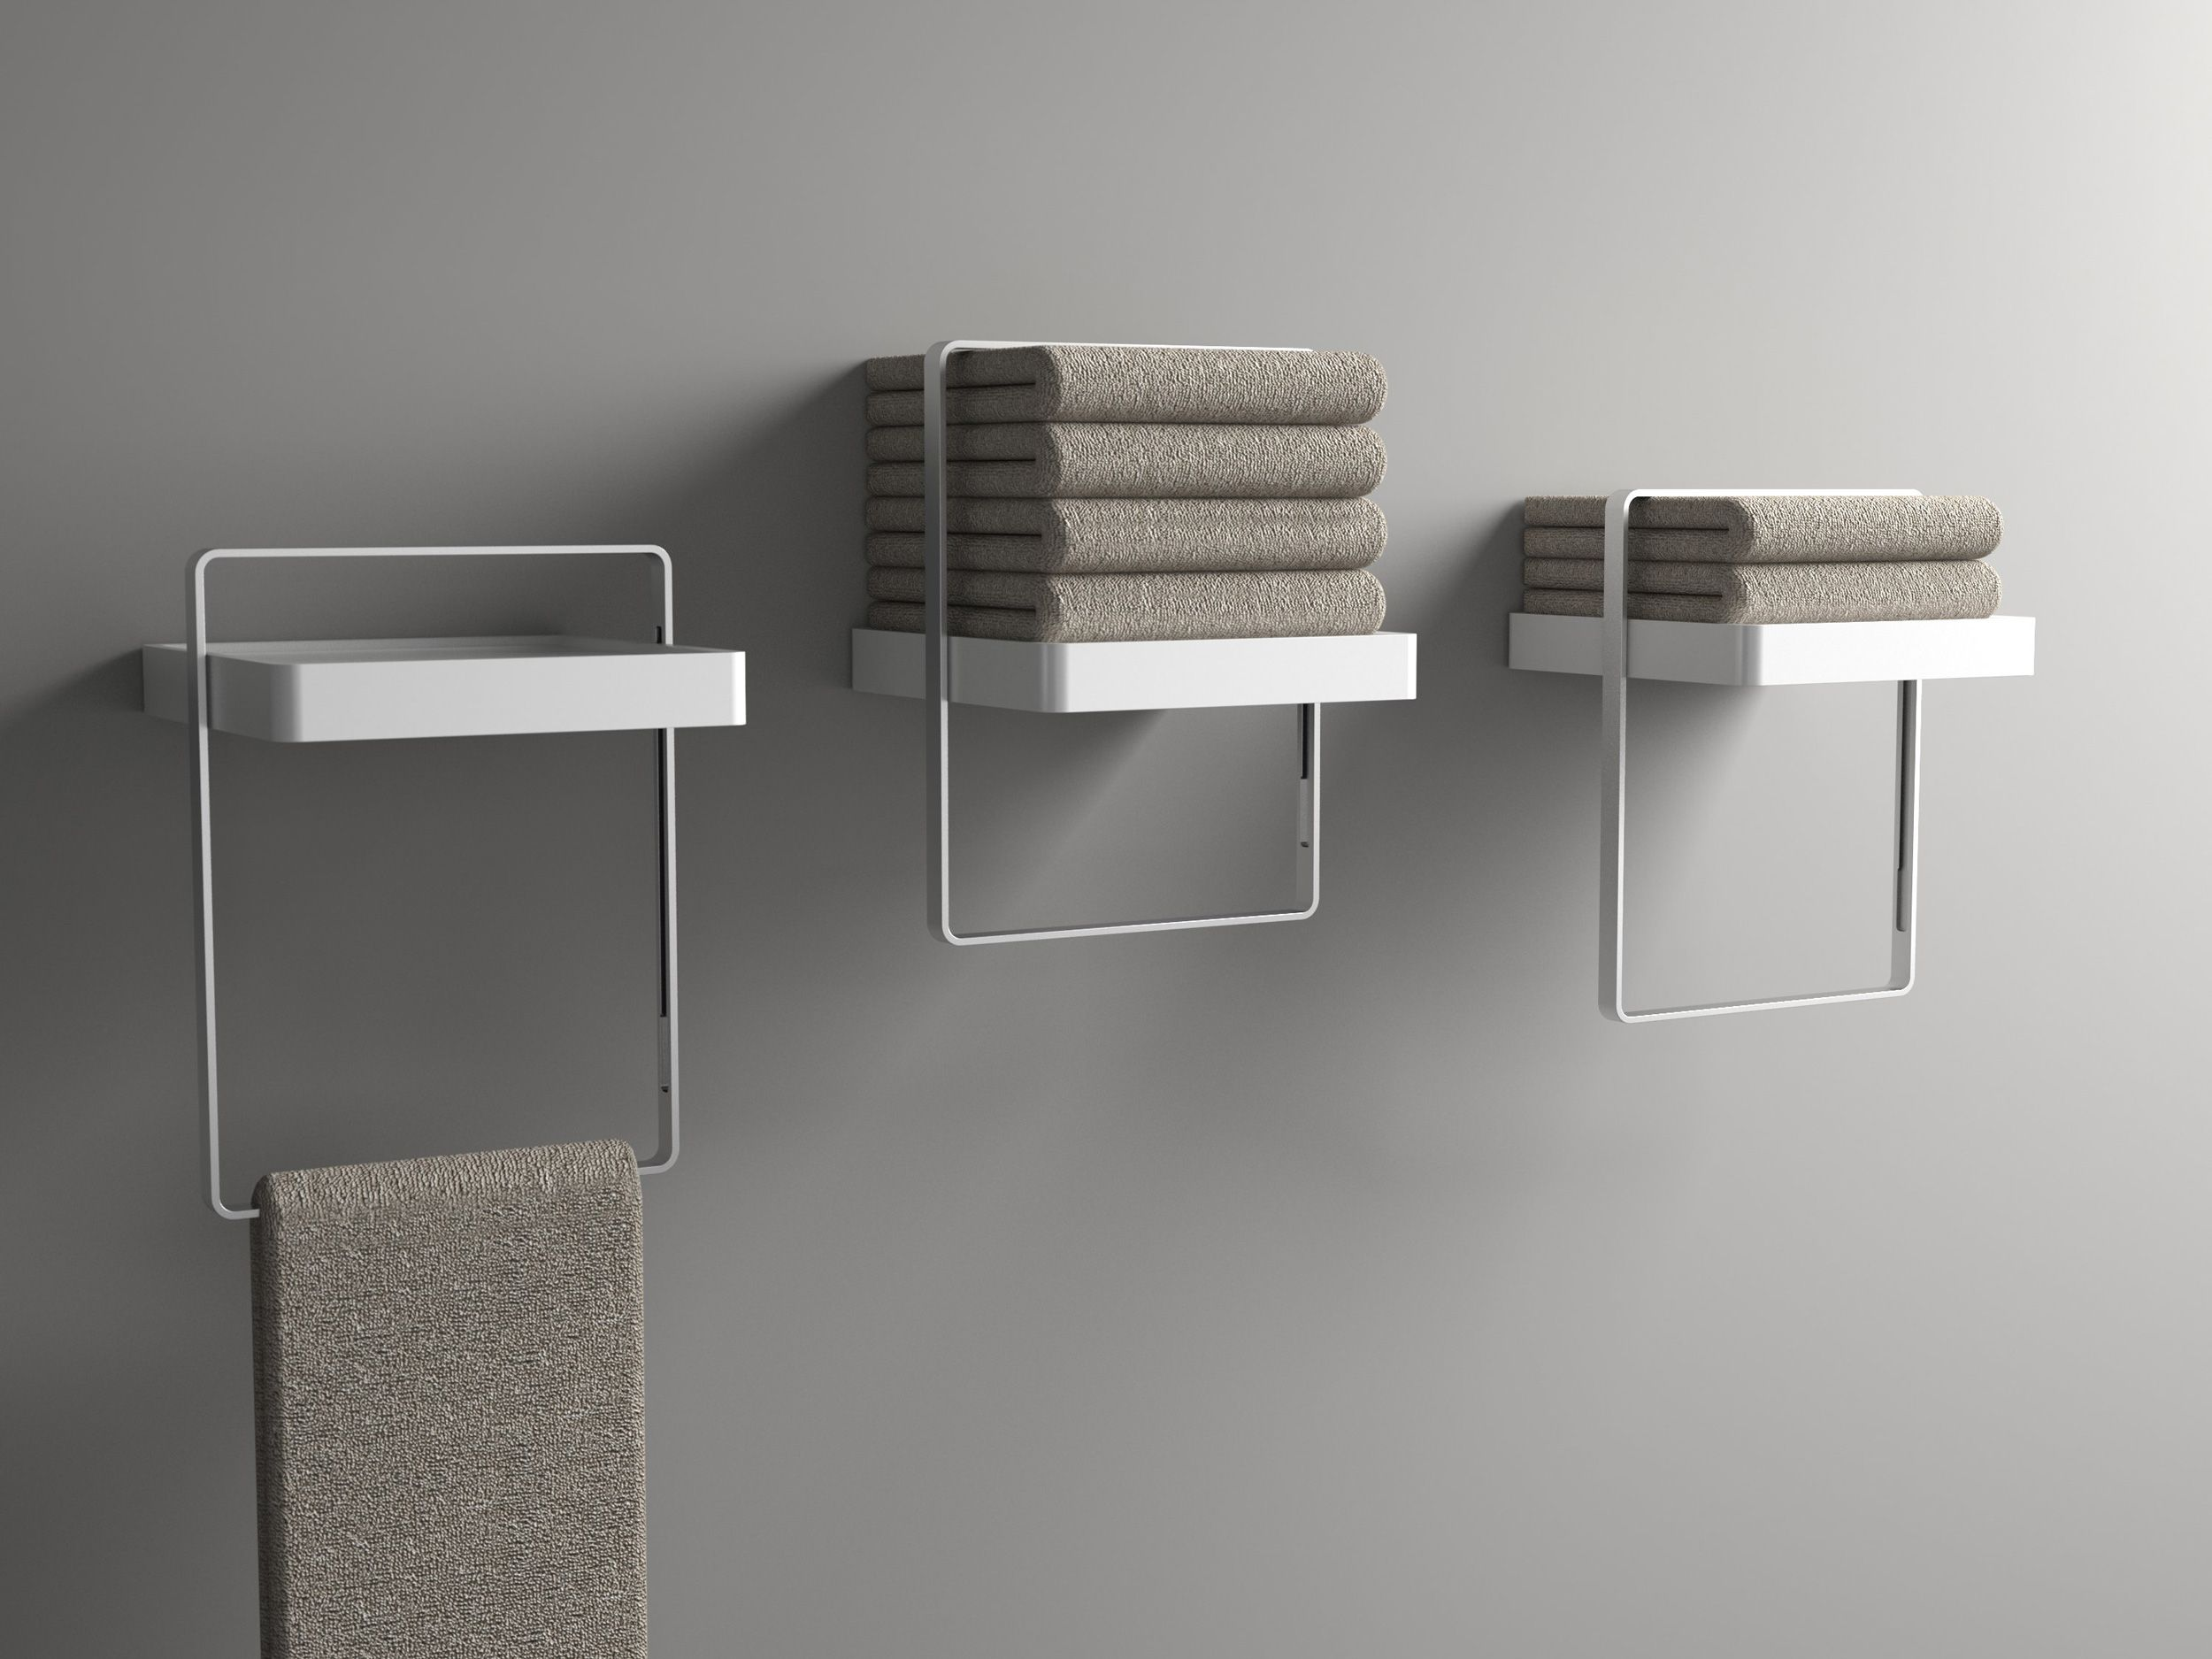 Slide bathroom towel bar for Agape designed by Cory Grosser